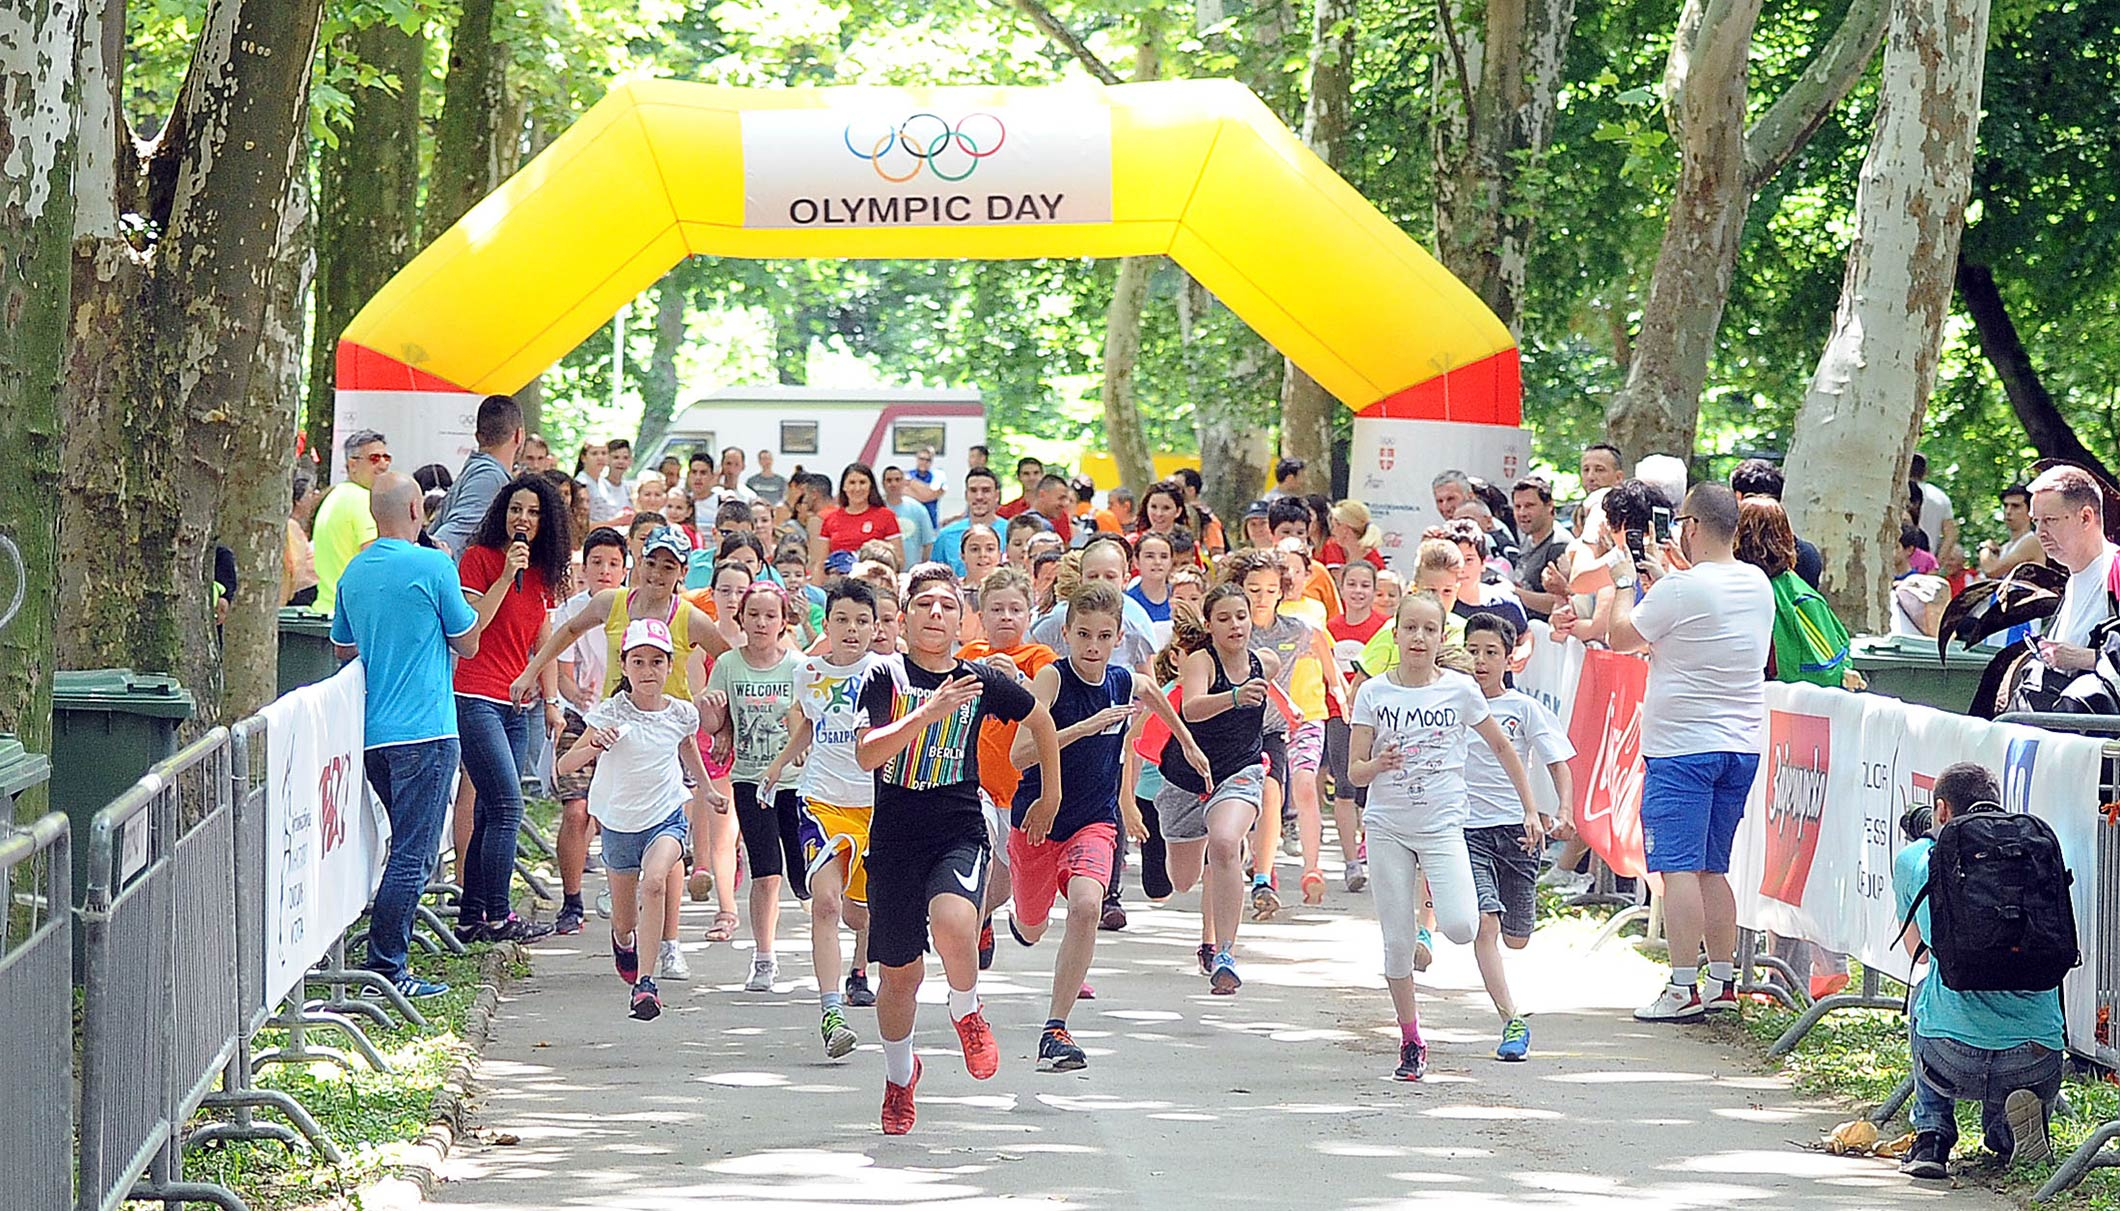 World is abuzz with activities as millions get active on Olympic Day